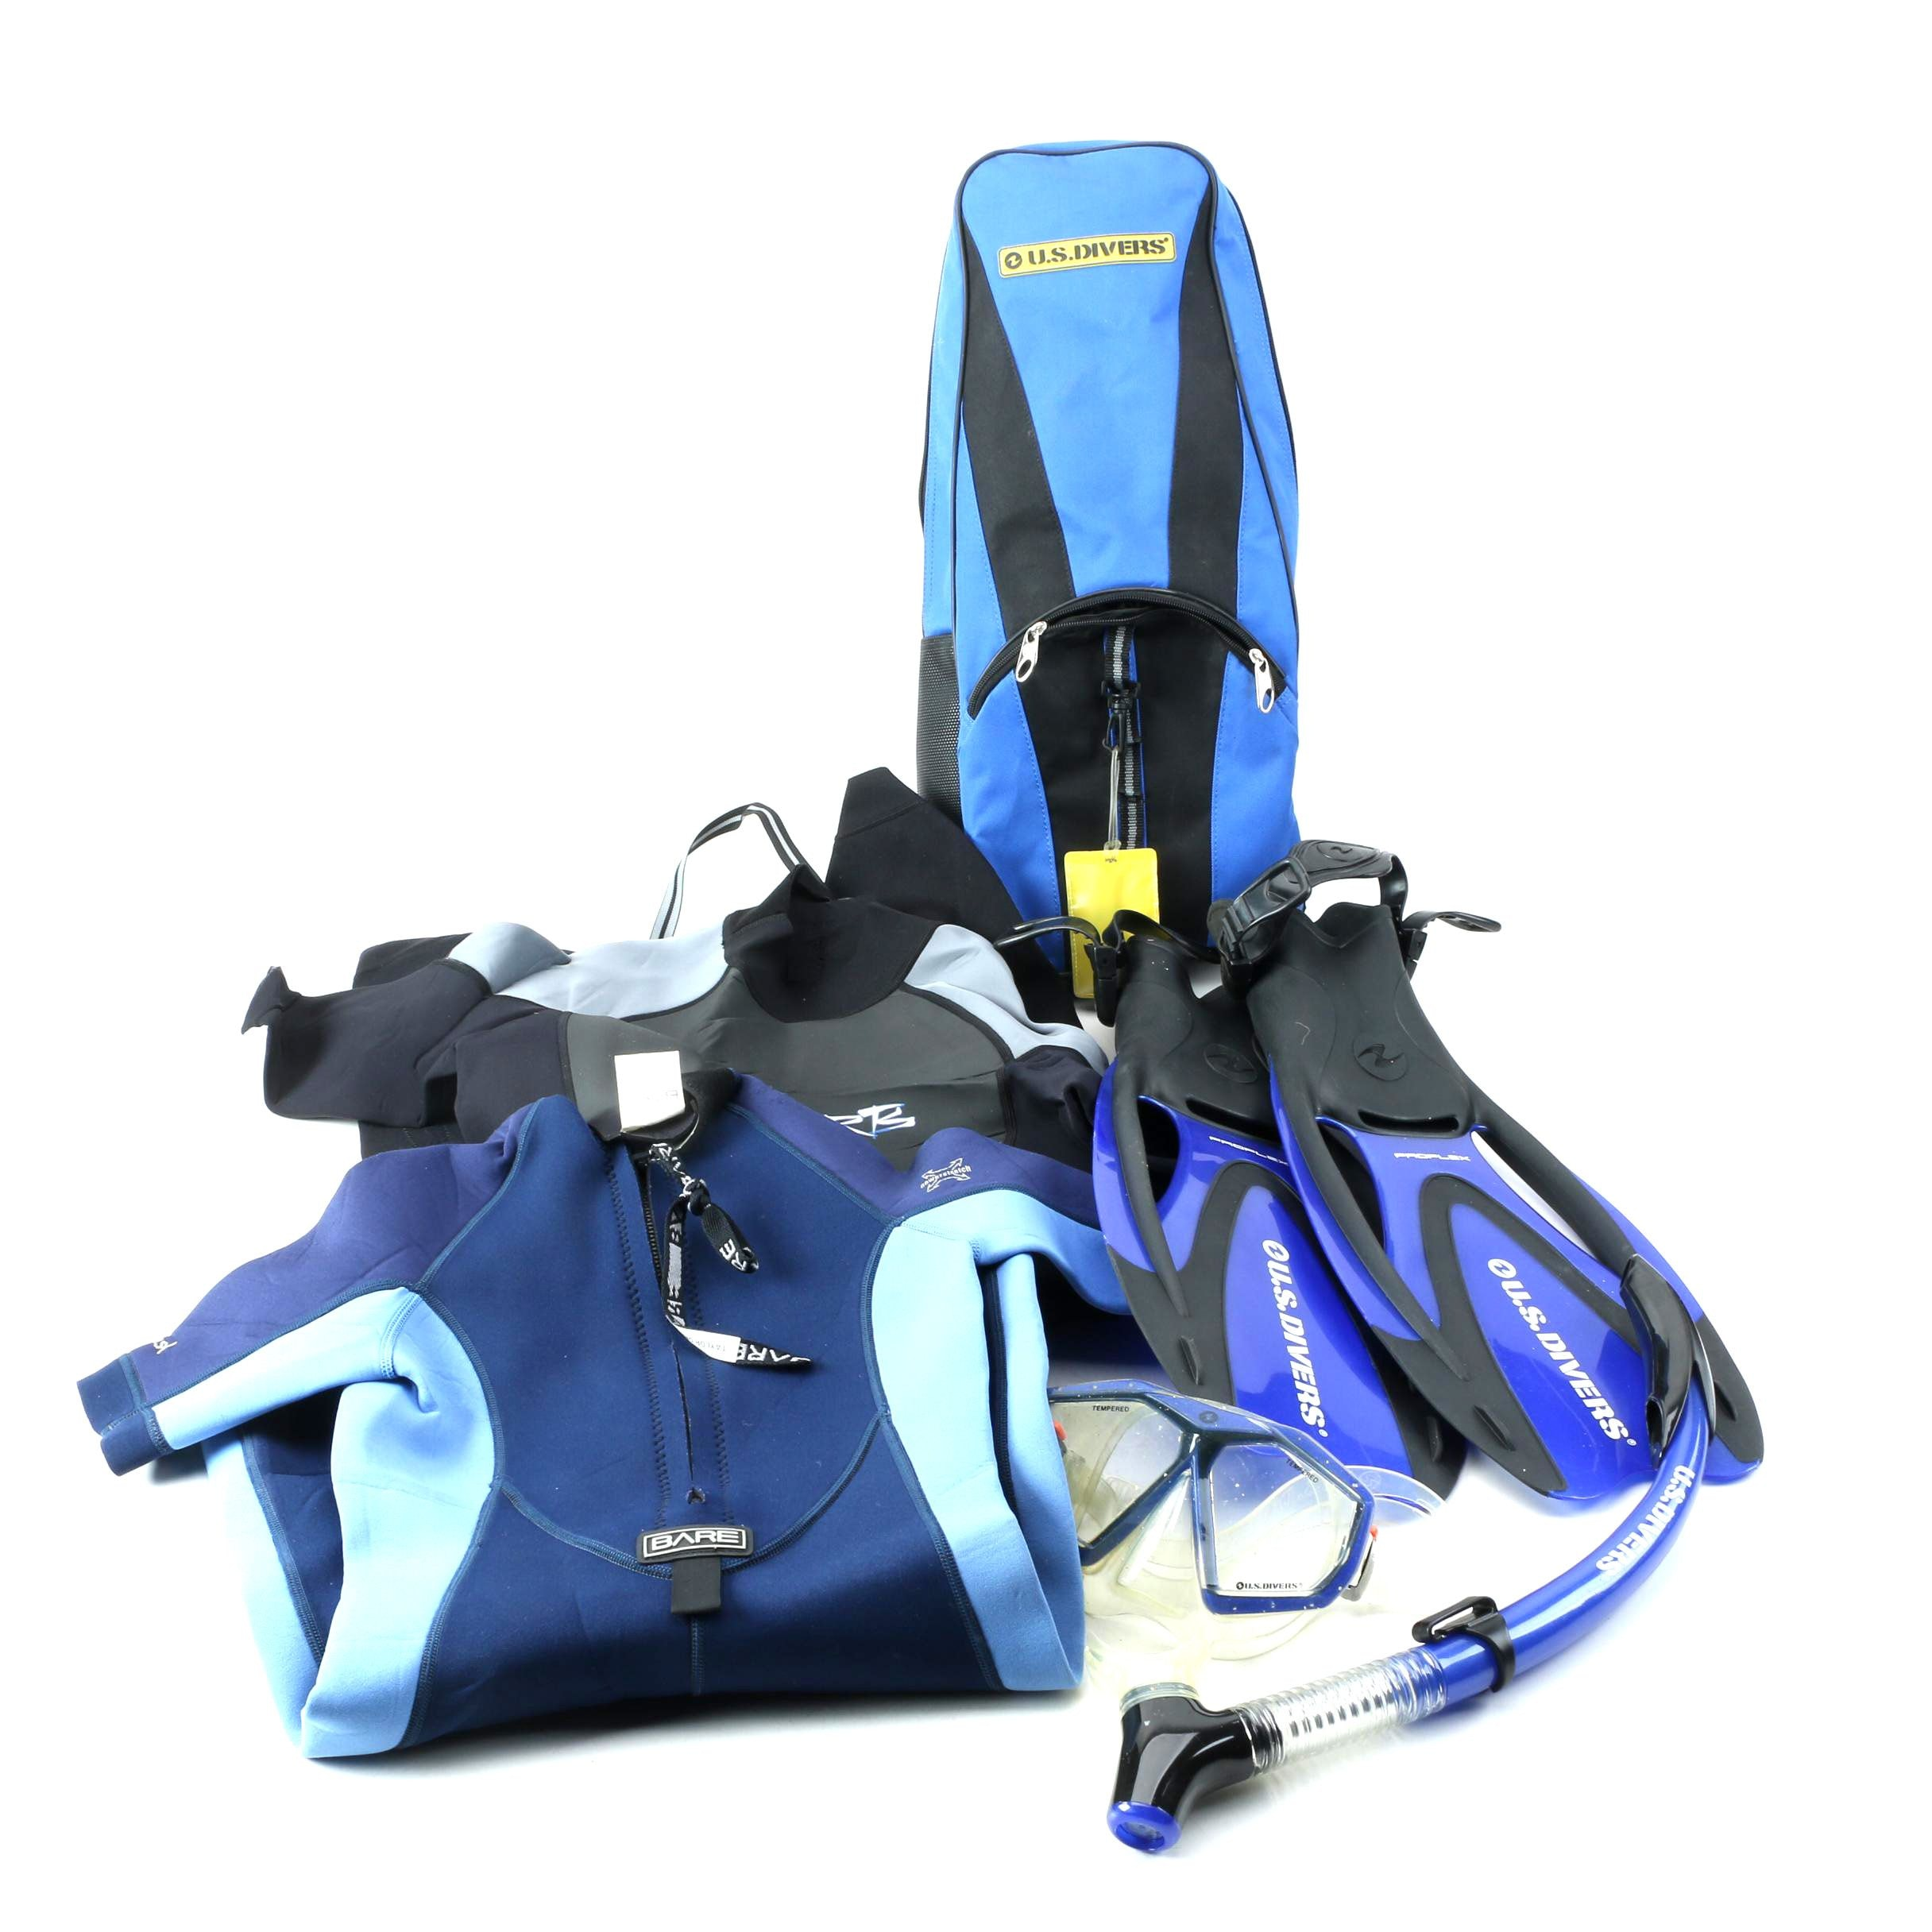 U.S. Divers Snorkeling Equipment with Bare and HO Sports Wetsuits